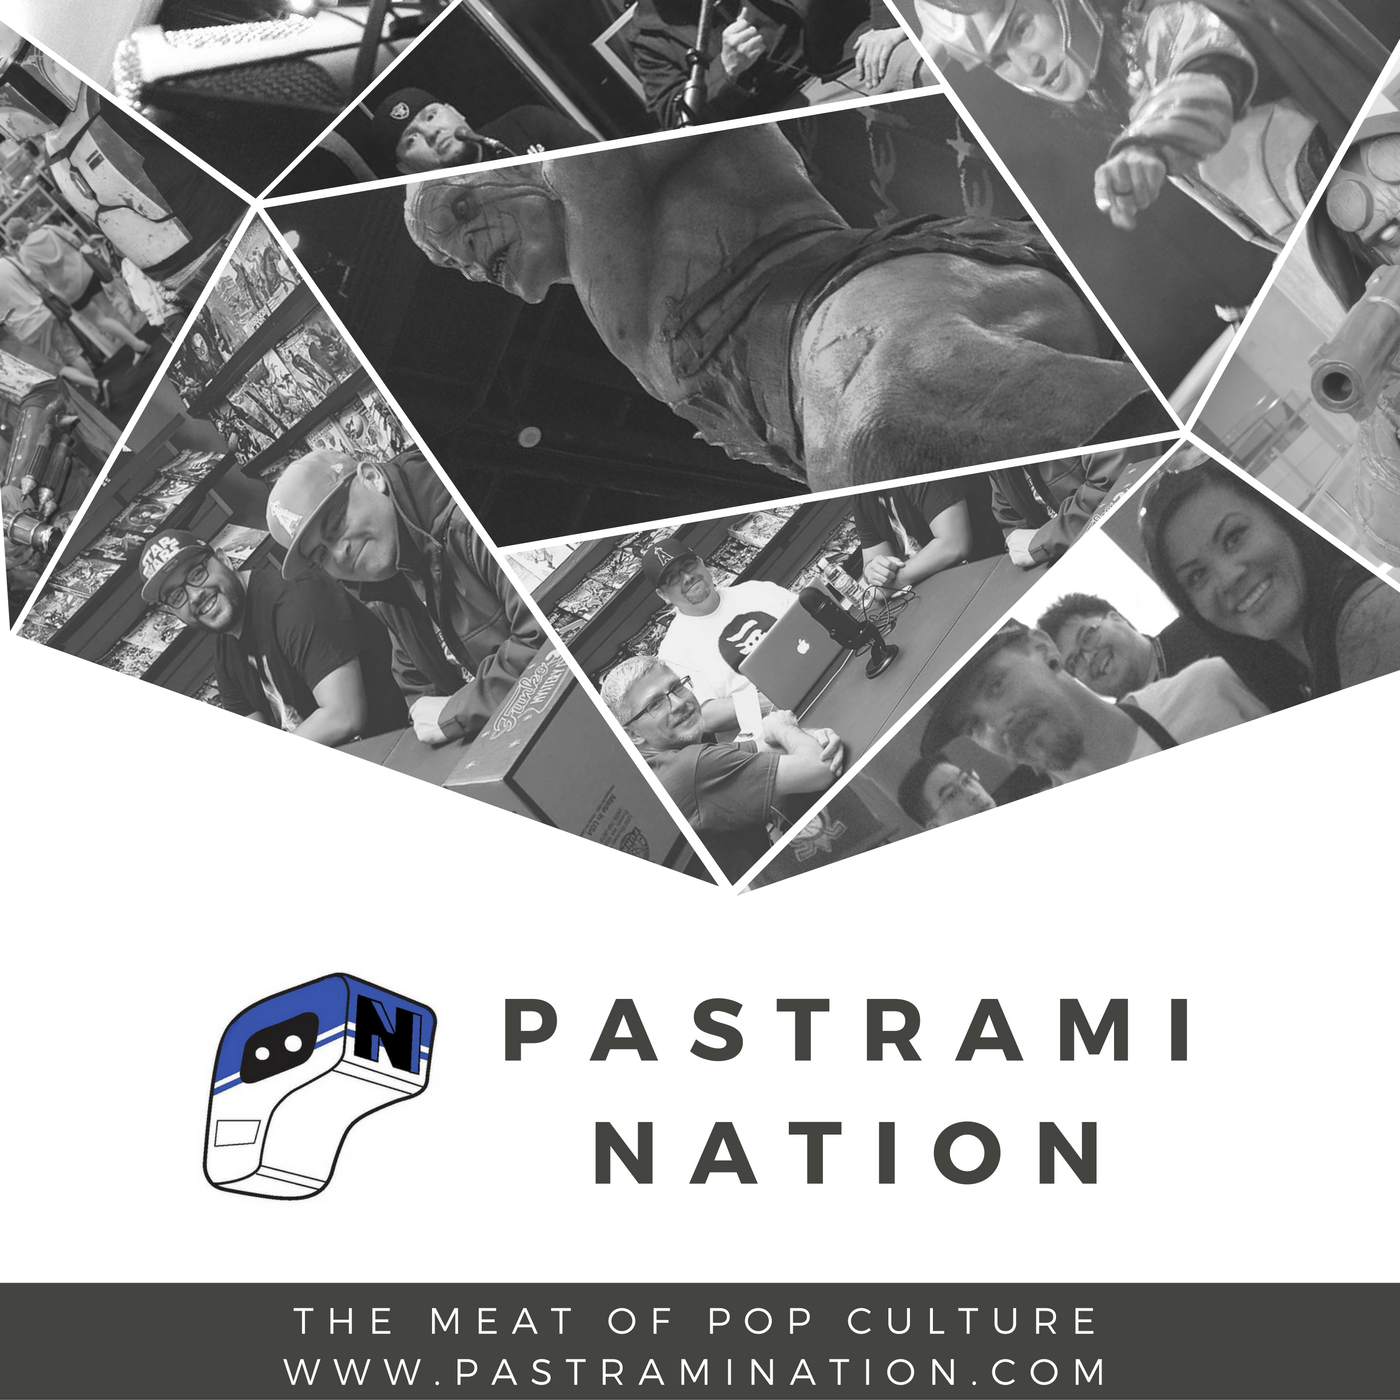 Pastrami Nation Podcast: Nintendo Switch, X-O Manowar, American Gods, Image Comics and More